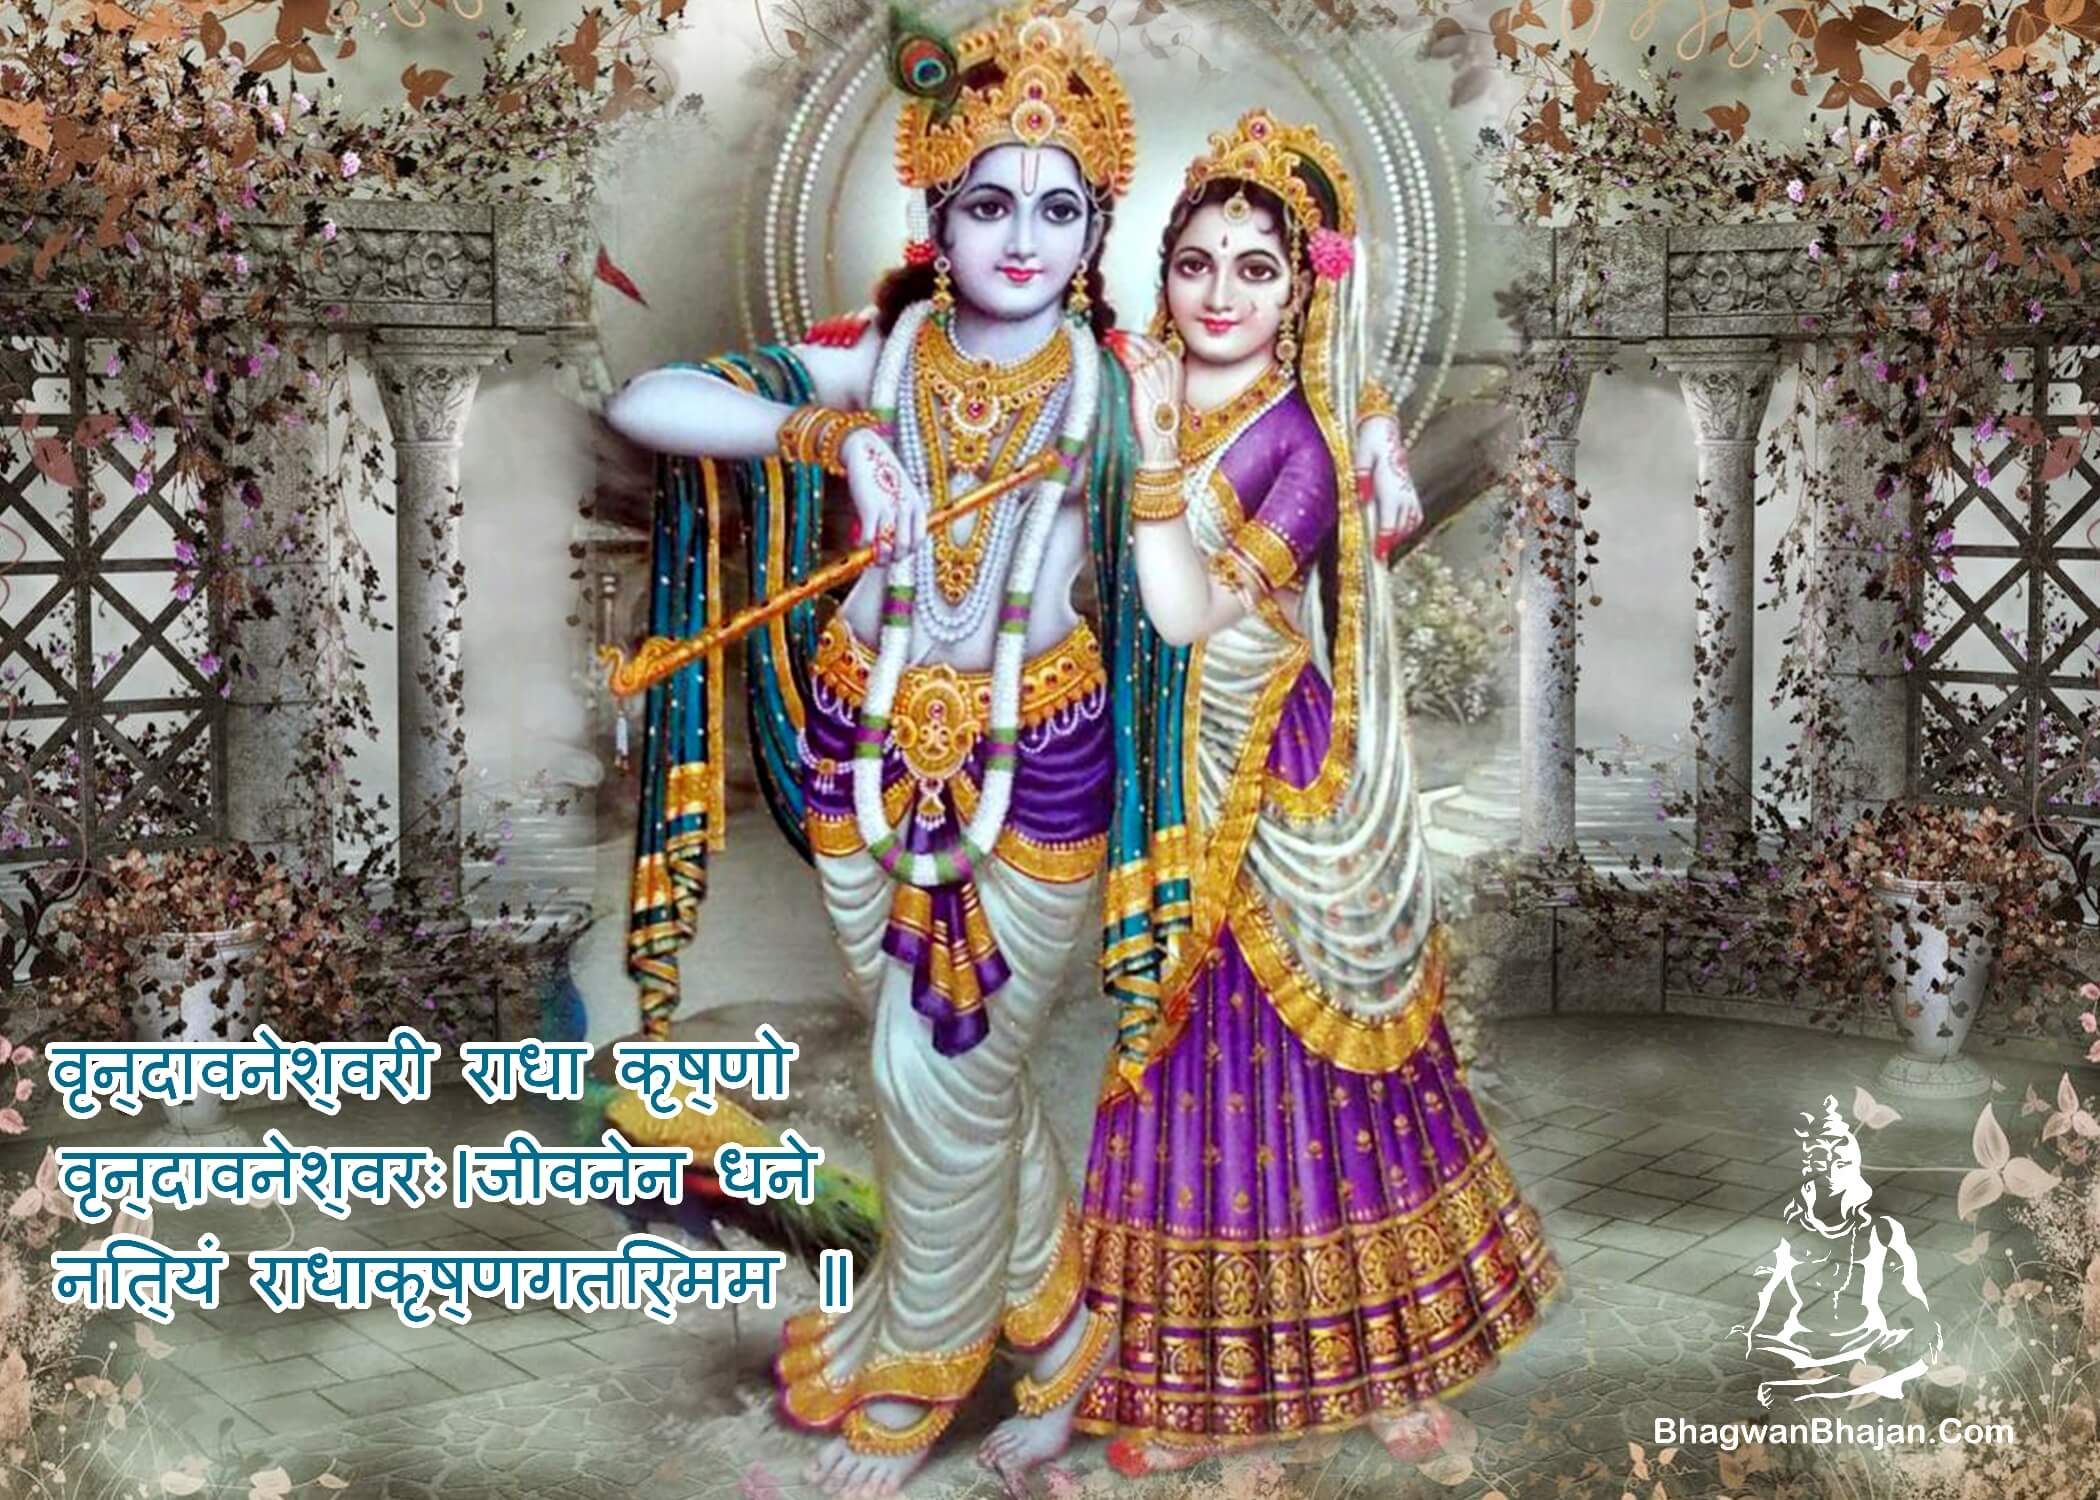 radha krishna basuri togerther wallpaper